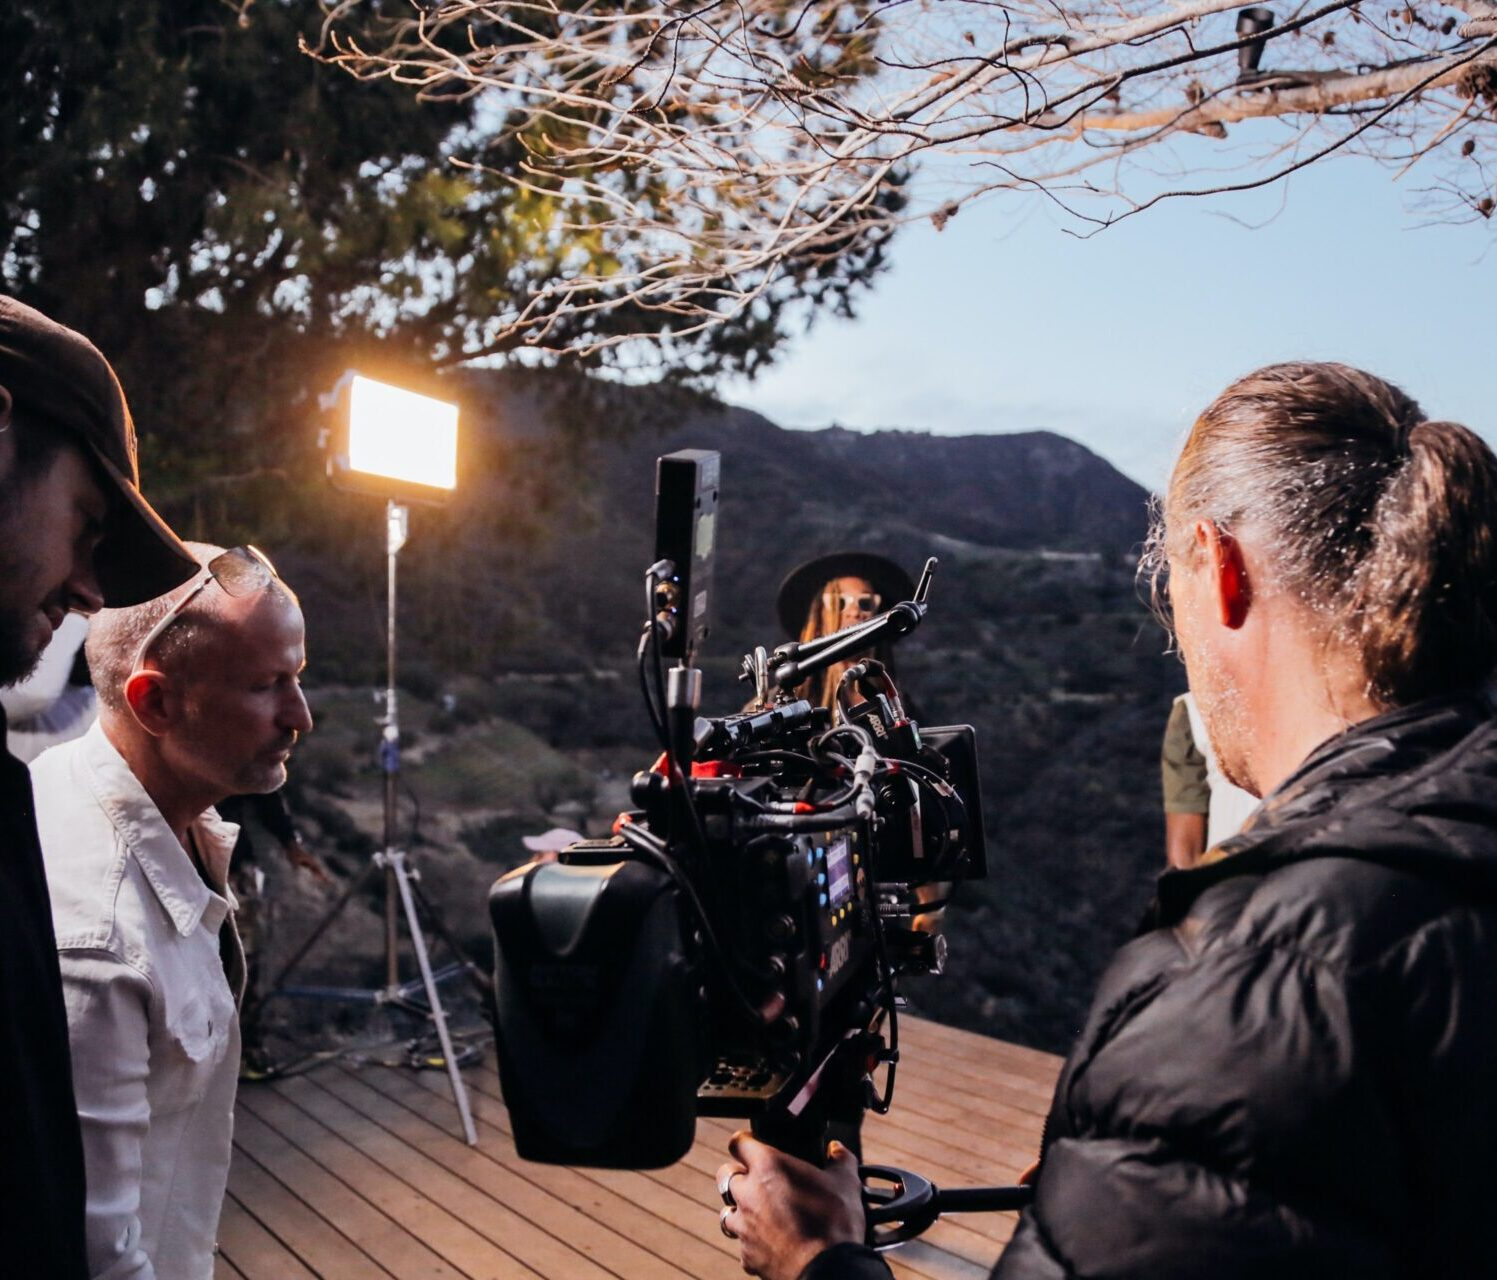 film-on-location-outside-people-camera